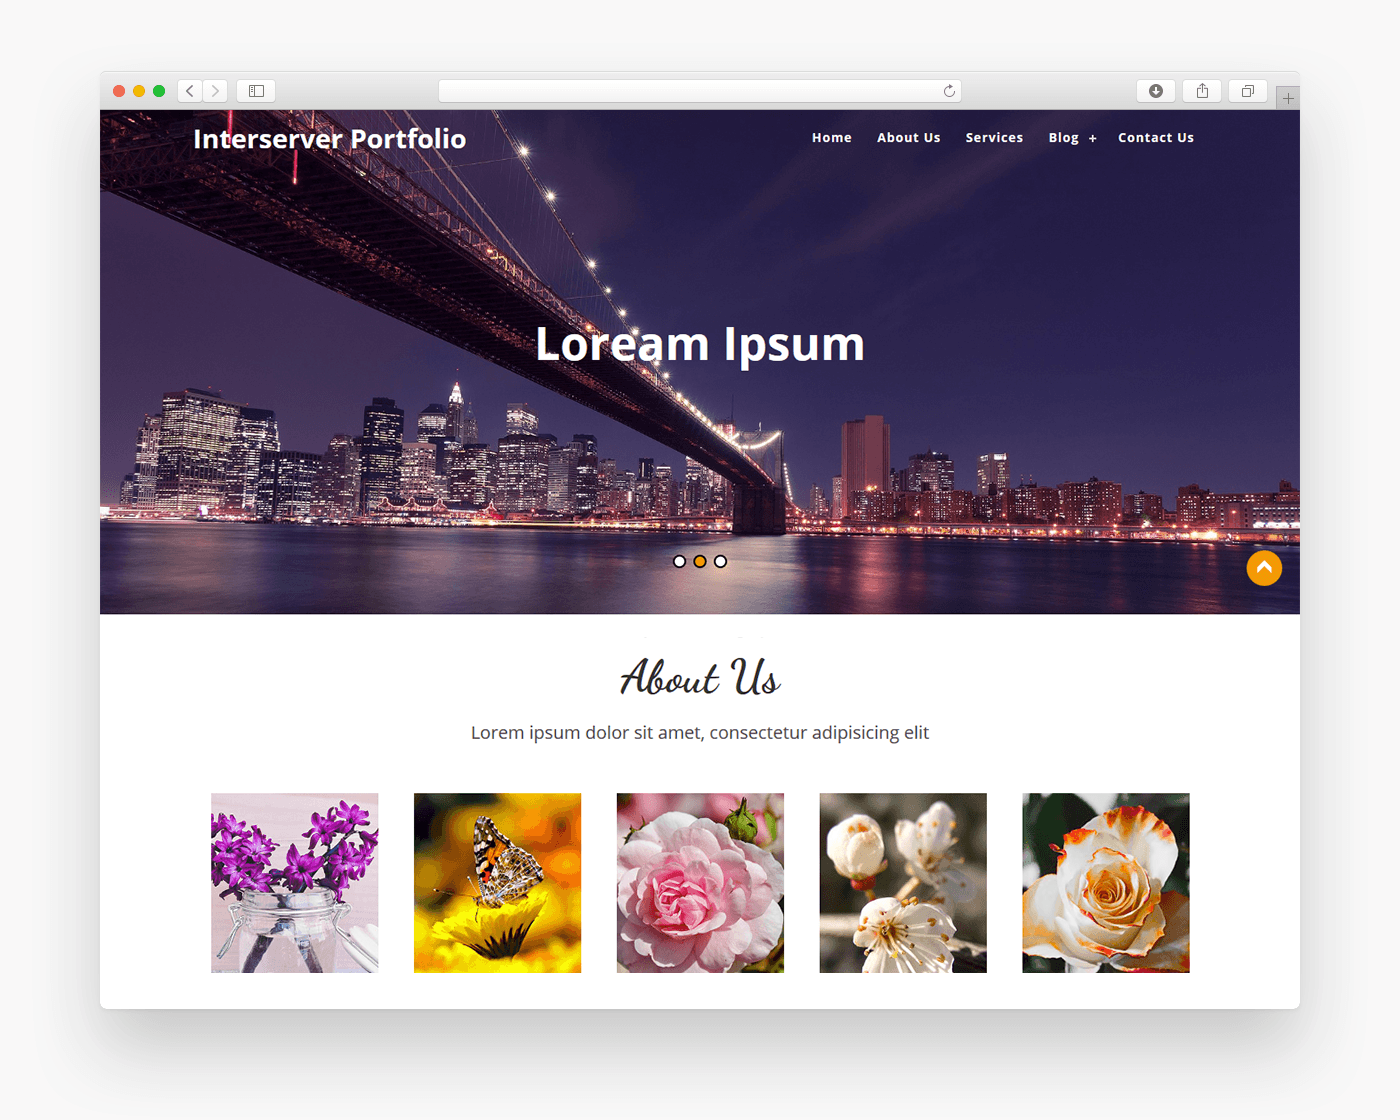 Interserver portfolio free business wordpress theme freebie supply the interserver portfolio theme for wordpress is a latest portfolio theme for various type of businesses it is easily customizable and have various options flashek Image collections